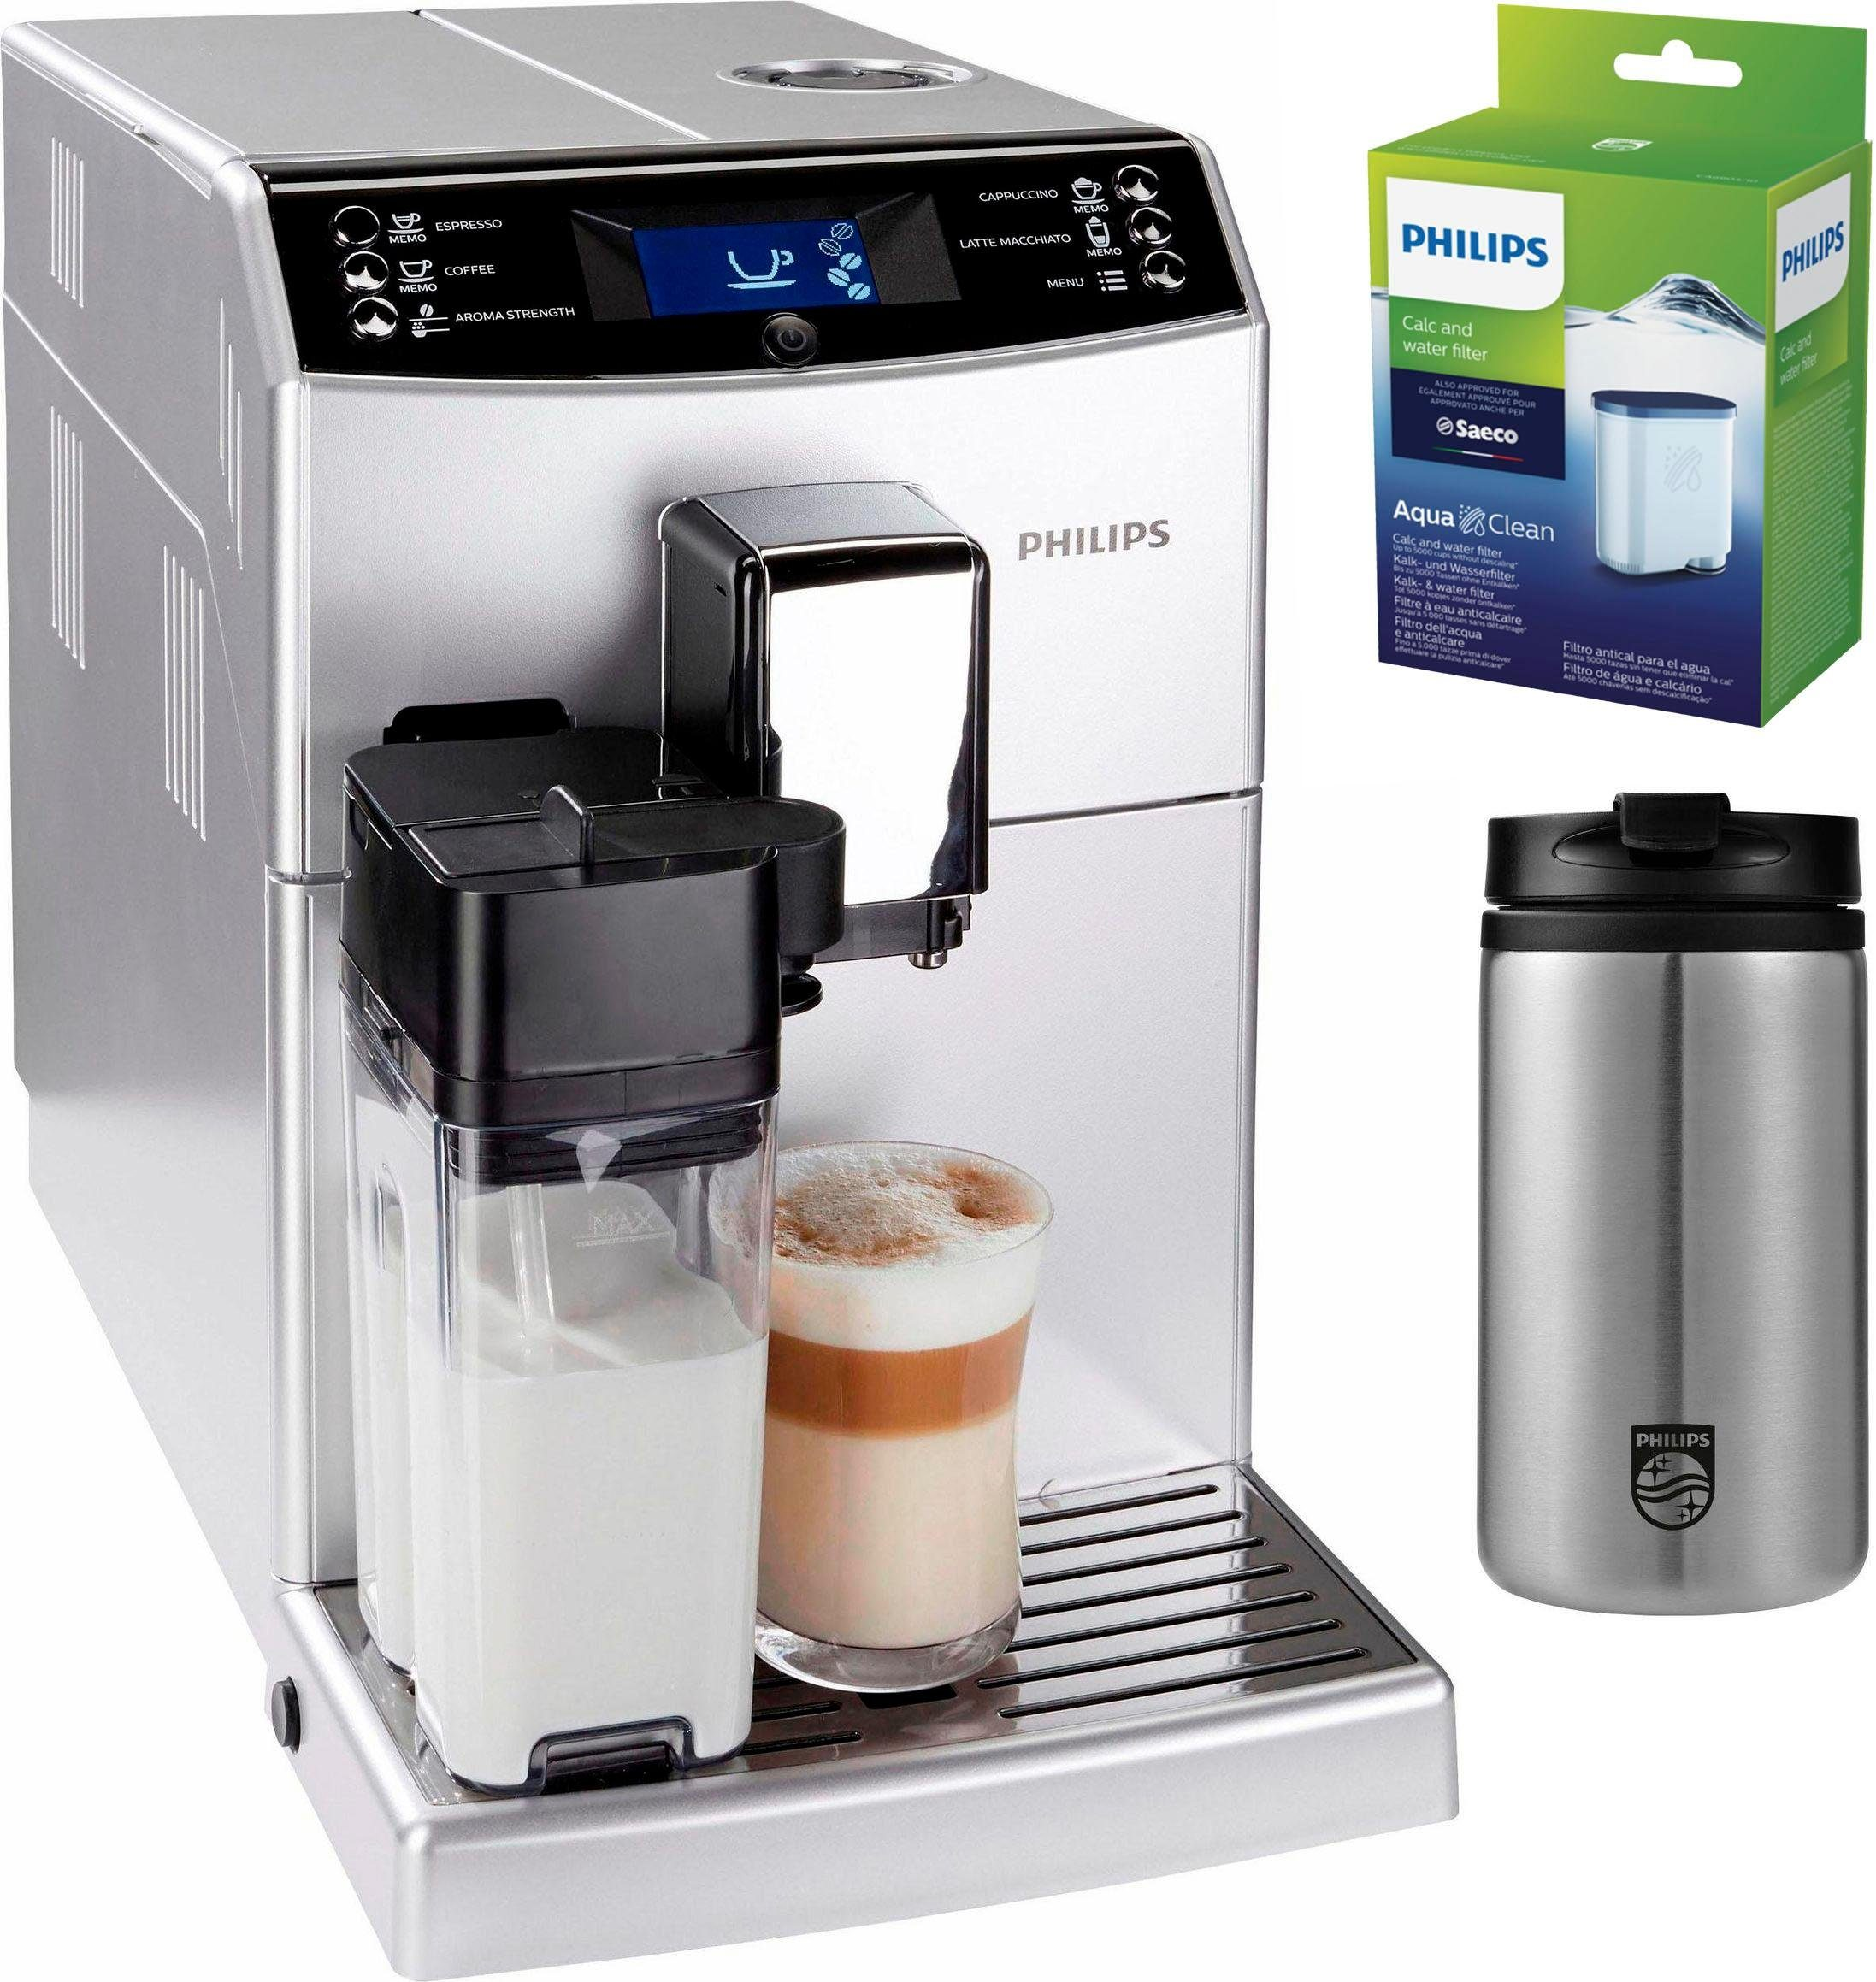 Philips Kaffeevollautomat 3100 Serie EP3551/10, inkl. 1 Thermobecher und 1 AquaClean Filter